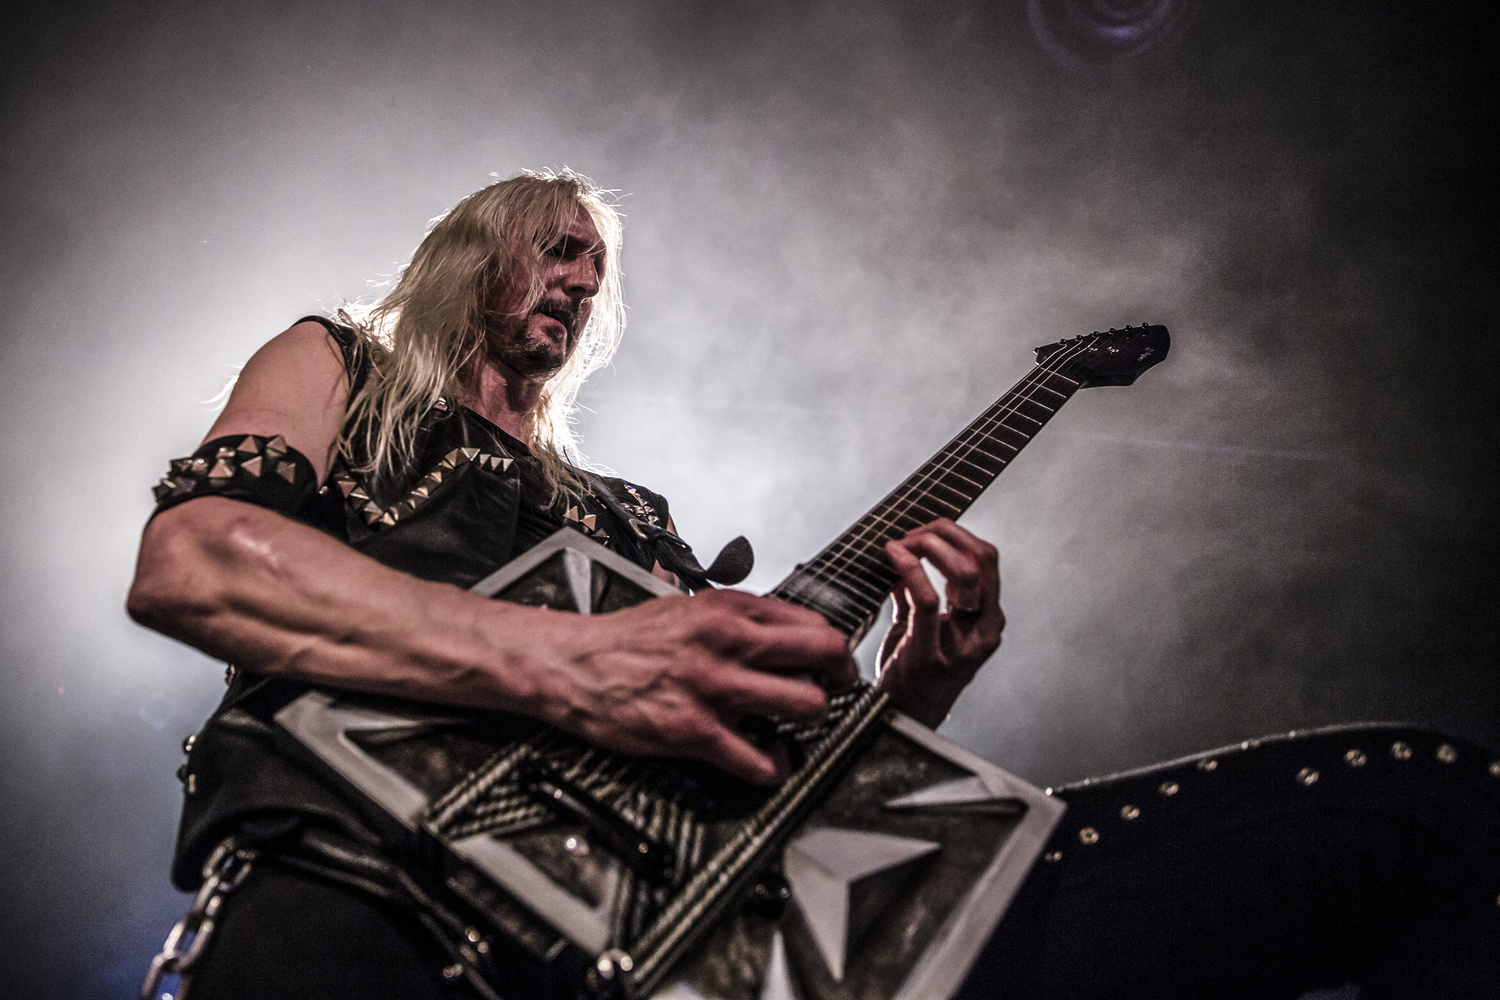 Hammerfall 2017 by Kevin Eisenlord